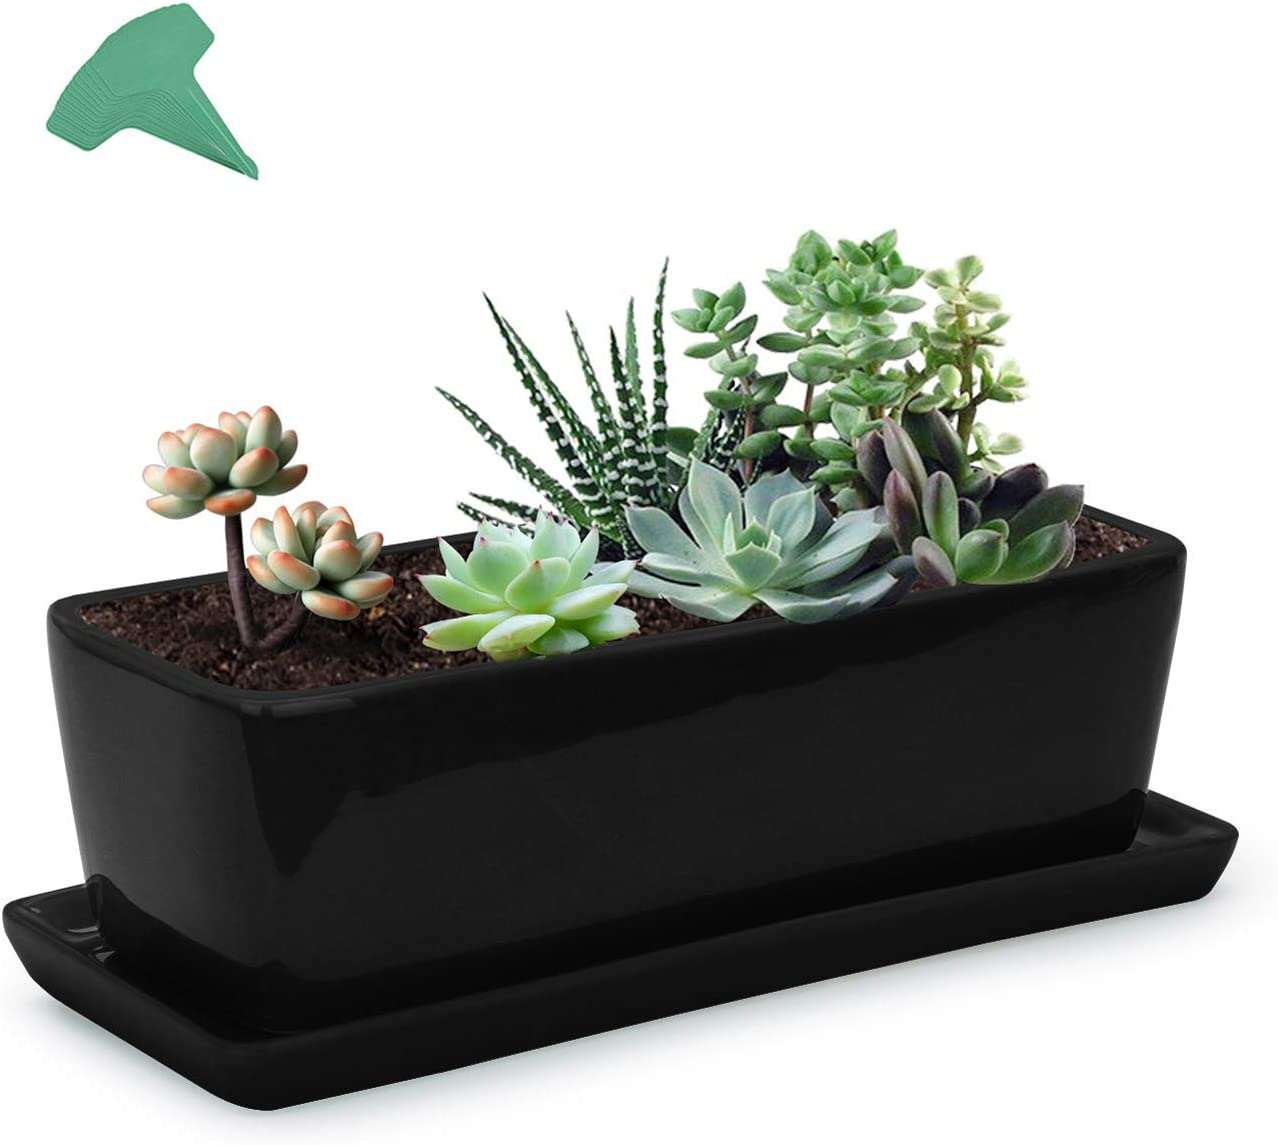 GROWNEER 14 Inches Rectangular Black Ceramic Succulent Planter Pot Window Boxes Flower Pots with 15 Pcs Plant Labels, Porcelain Planters with Saucer for Garden Patio Yard Bedroom Living Room